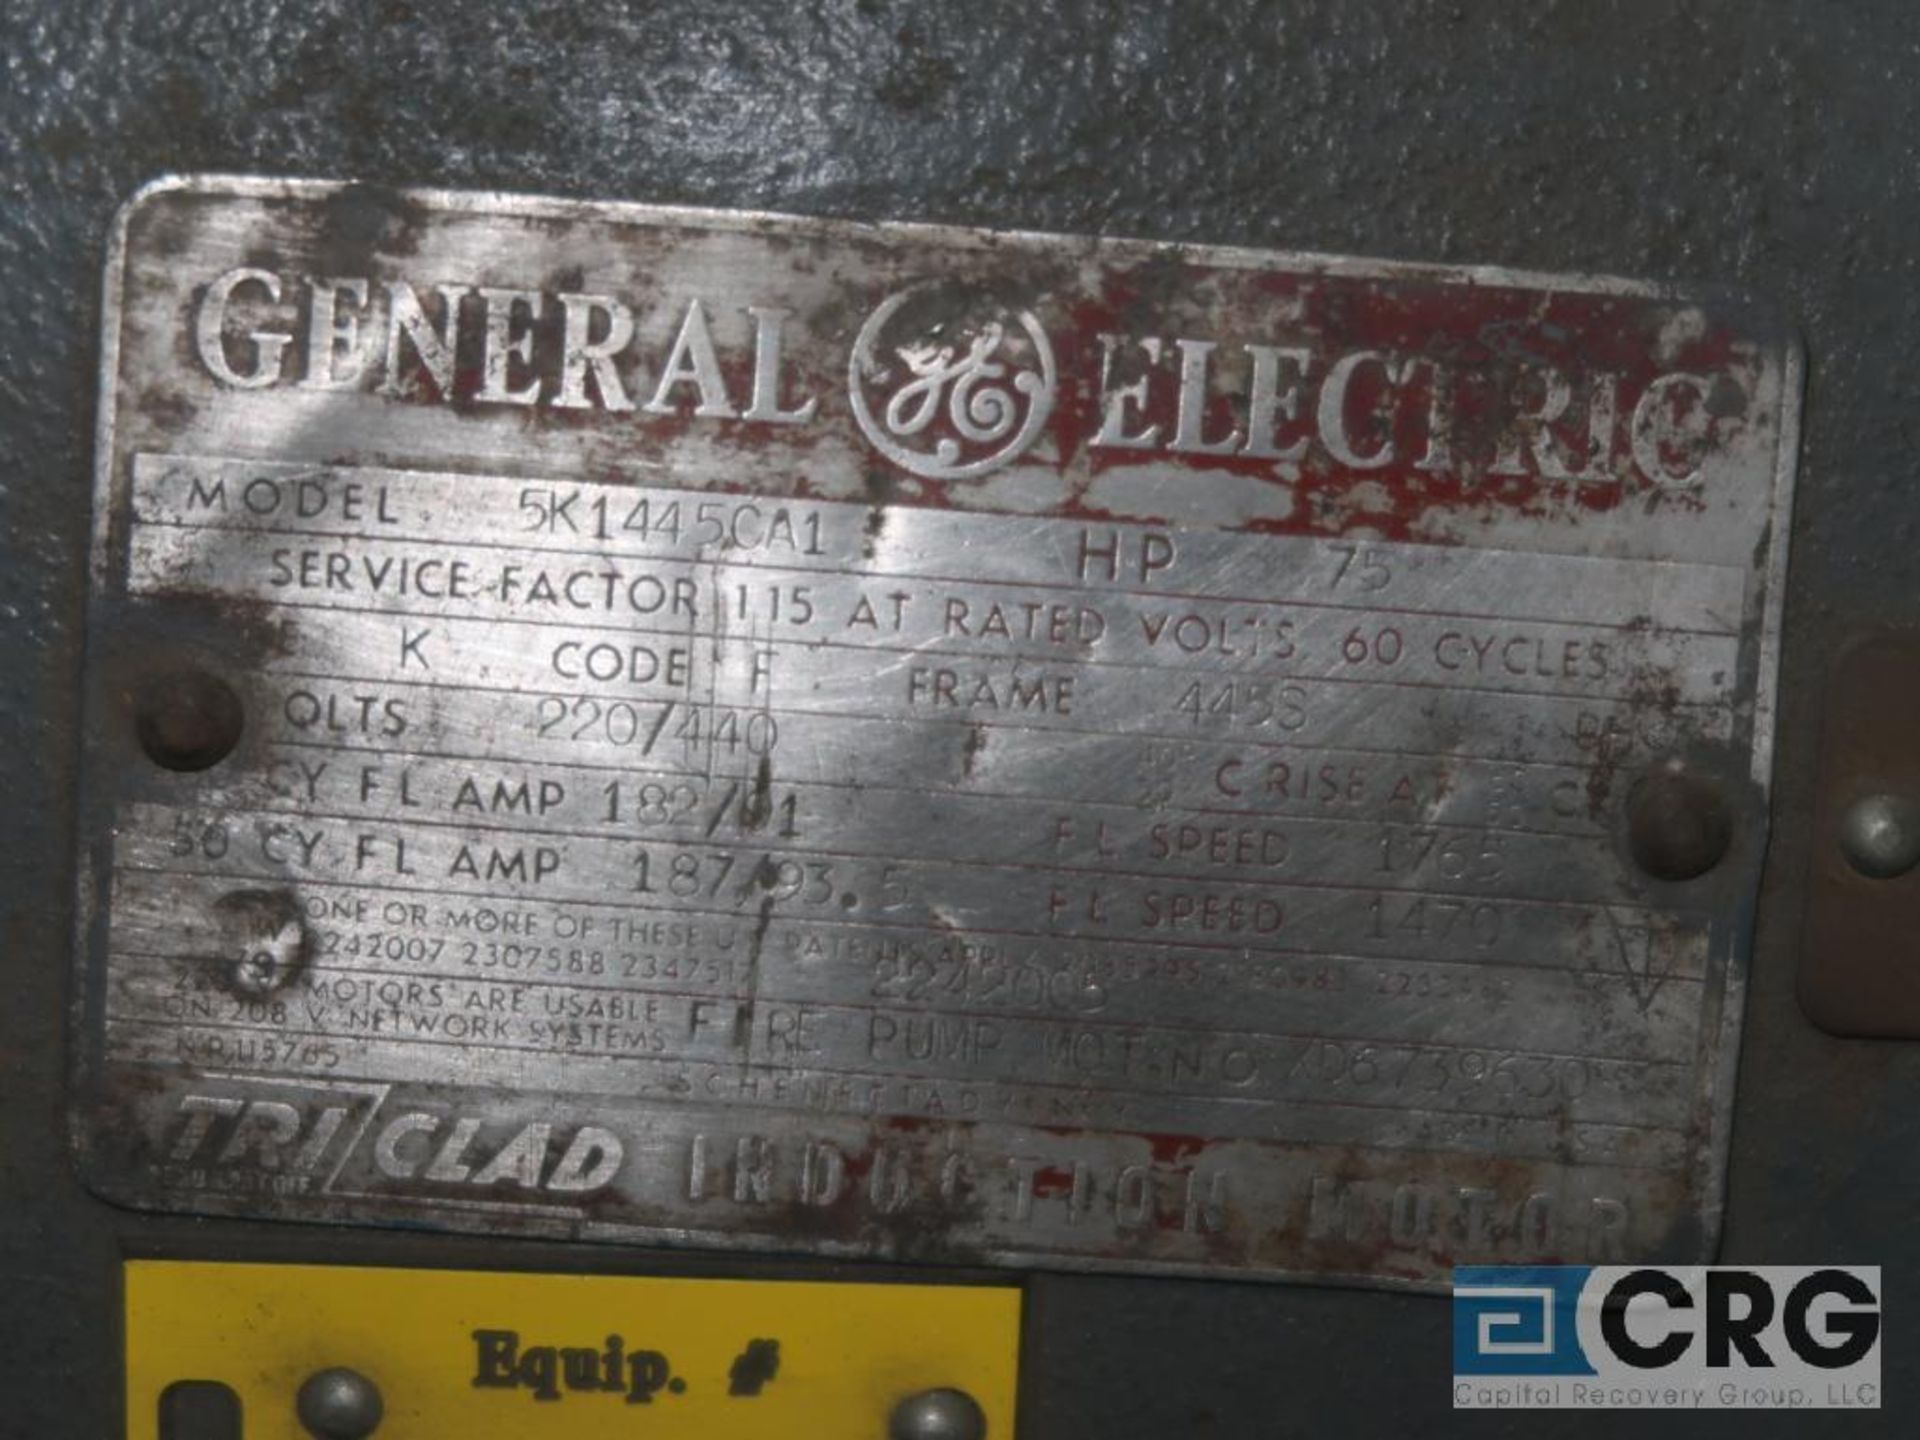 General Electric induction motor, 75 HP, 1,765 RPMS, 220/440 volt, 3 ph., 445S frame (Finish - Image 2 of 2